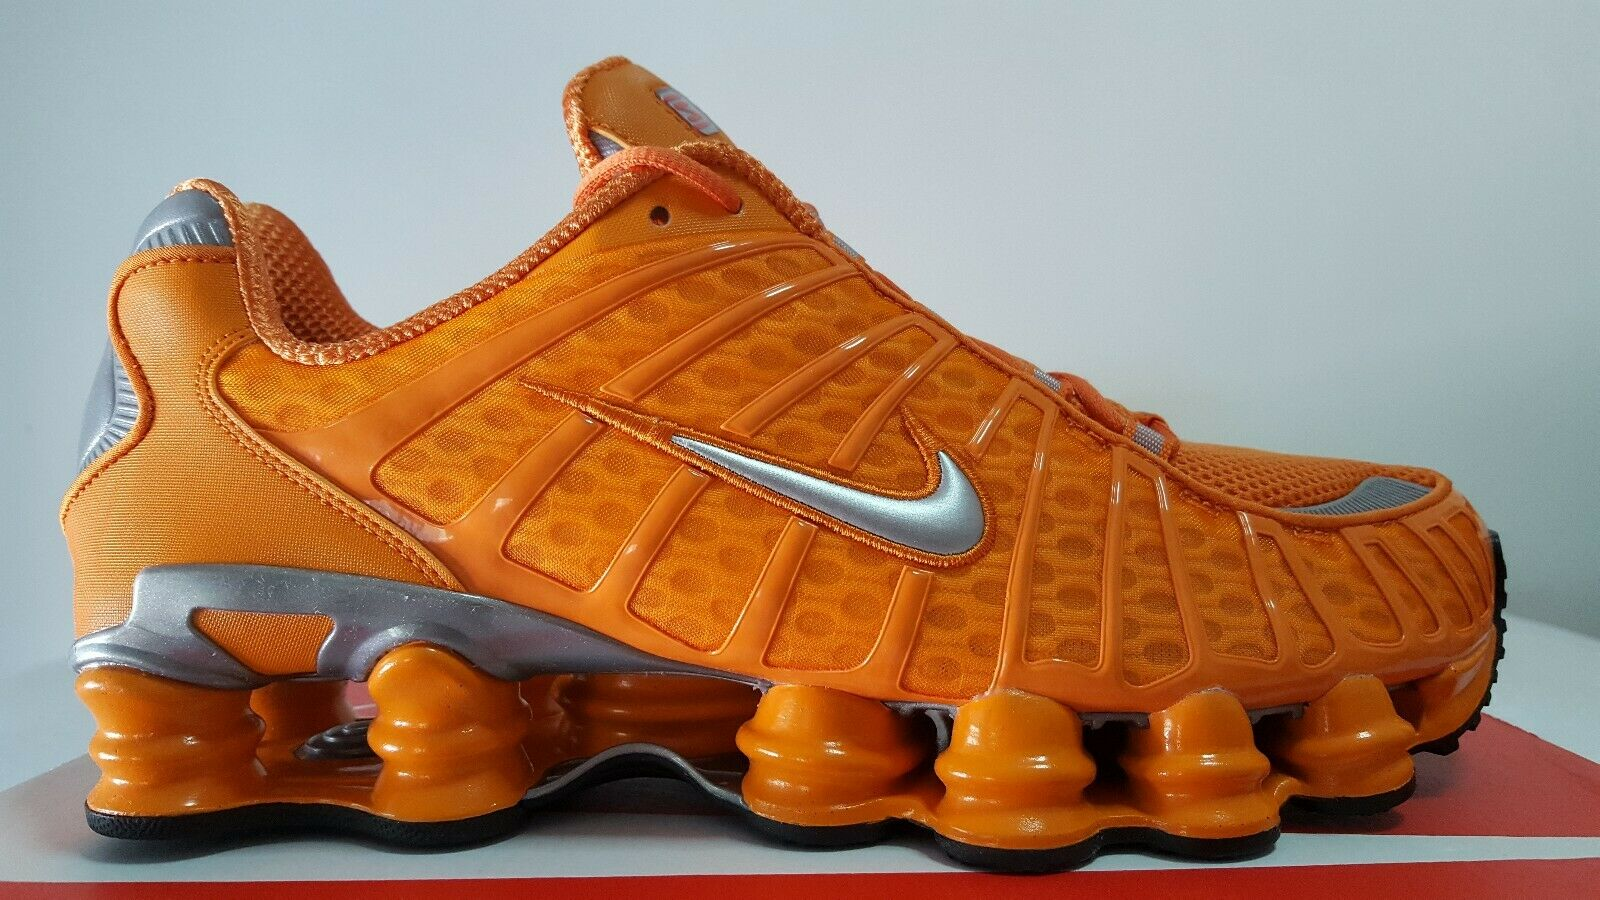 NIKE SHOX TL TOTAL Jugar naranja plata N.45.5 THE RETURN OF SHOX NEW ENTRY 97